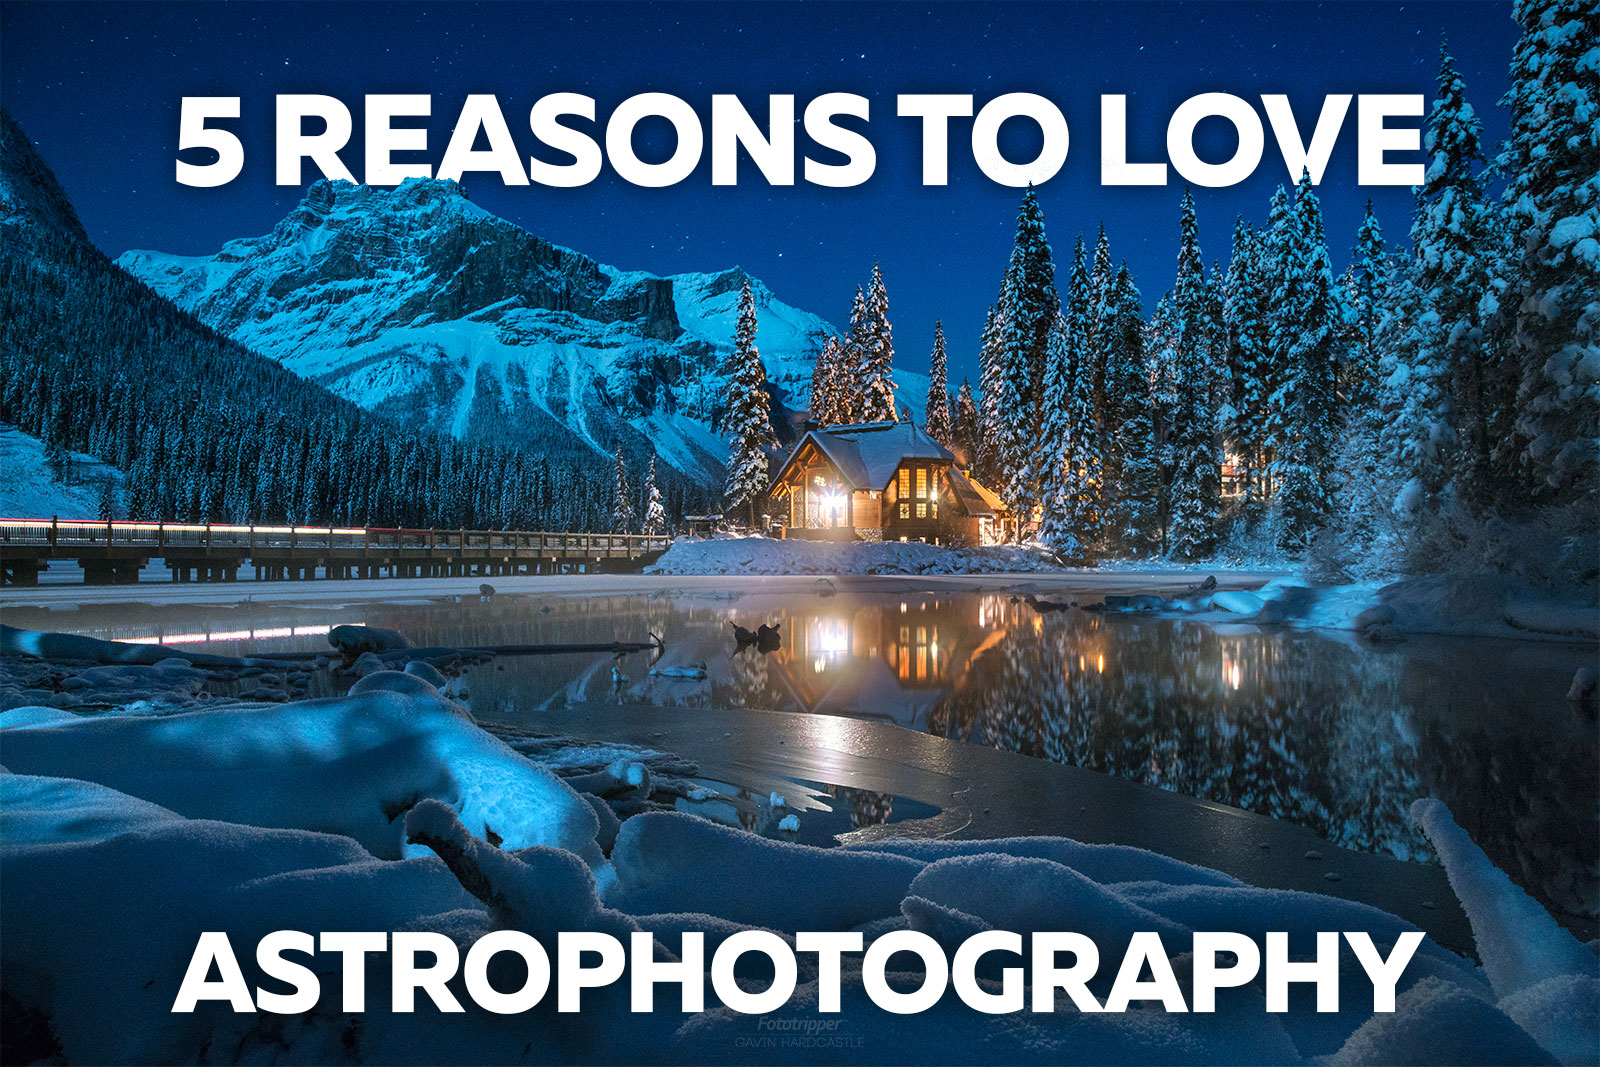 5 Reasons to Love Astrophotography